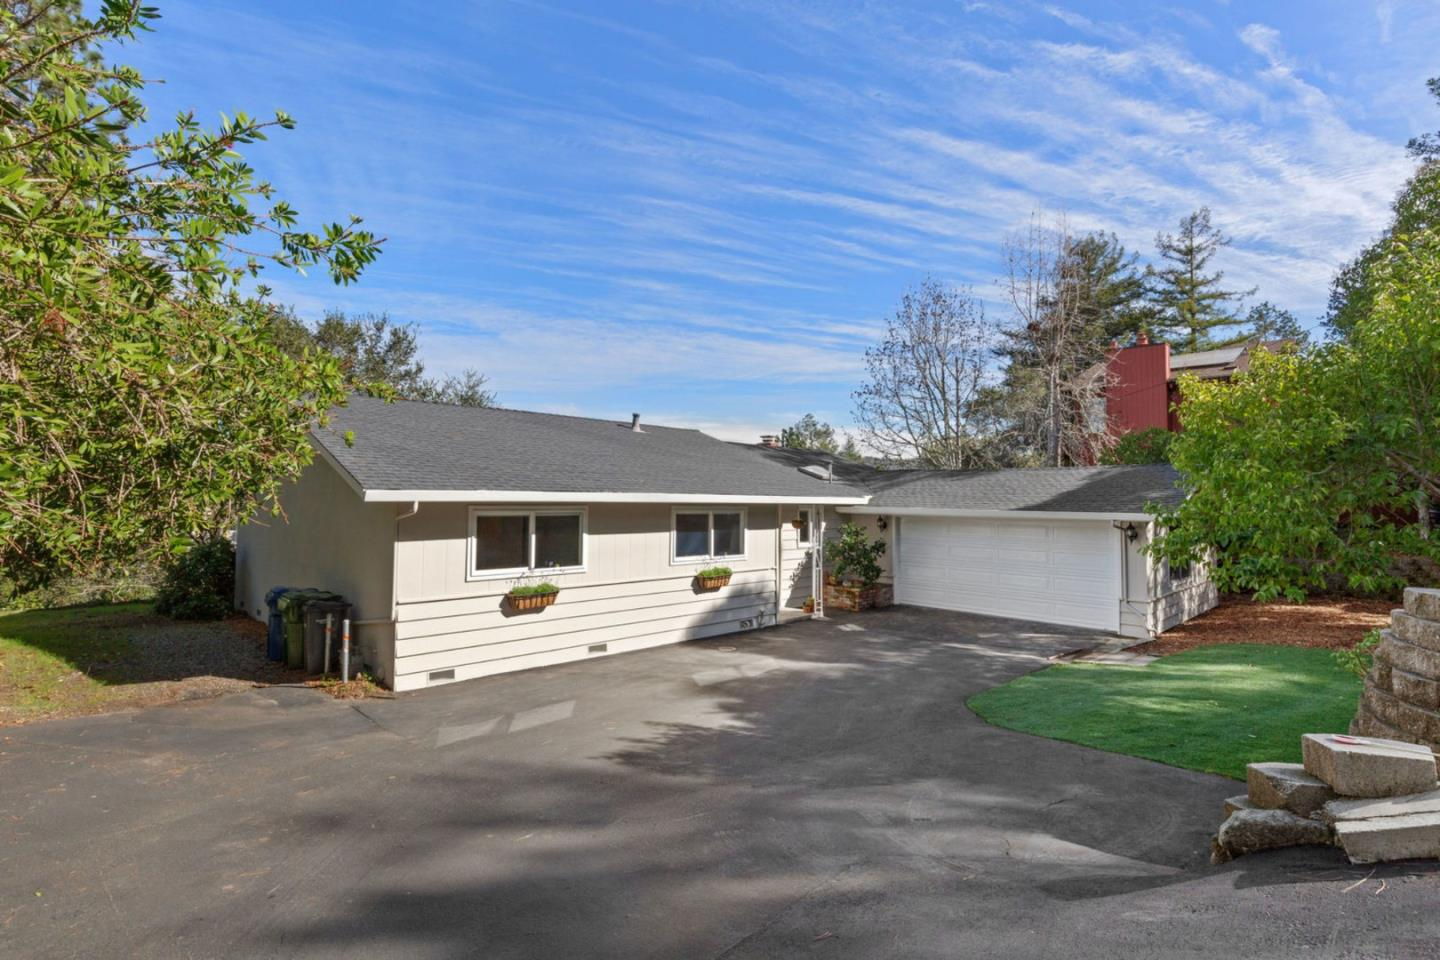 """Adorable single level home in the highly desirable Whispering Pines neighborhood. Featuring 3 large bedrooms, 2 full baths, and an open light-filled floor-plan w/ walls of windows to take in the spectacular panoramic views of beautiful Scotts Valley. Yes! It is possible to have sweeping mountain views and live in the middle of town. Originally built in 1965, this home has been tastefully updated over the years while still keeping its vintage charm. Warm oak hardwood floors & cozy wood burning fireplace w/ brick surround give the home the """"just right"""" feeling you've been searching for. The sliding glass door off the living rm connects to the huge rear deck which is perfect for entertaining or enjoying your morning coffee. Attached 2-car garage offers plenty of storage for your toys/hobbies, while the established, low maintenance landscape give you plenty of time to play or relax. Easy access to HWY 17, close proximity to town, & Award-Winning SV Schools! You're going to love this life!"""